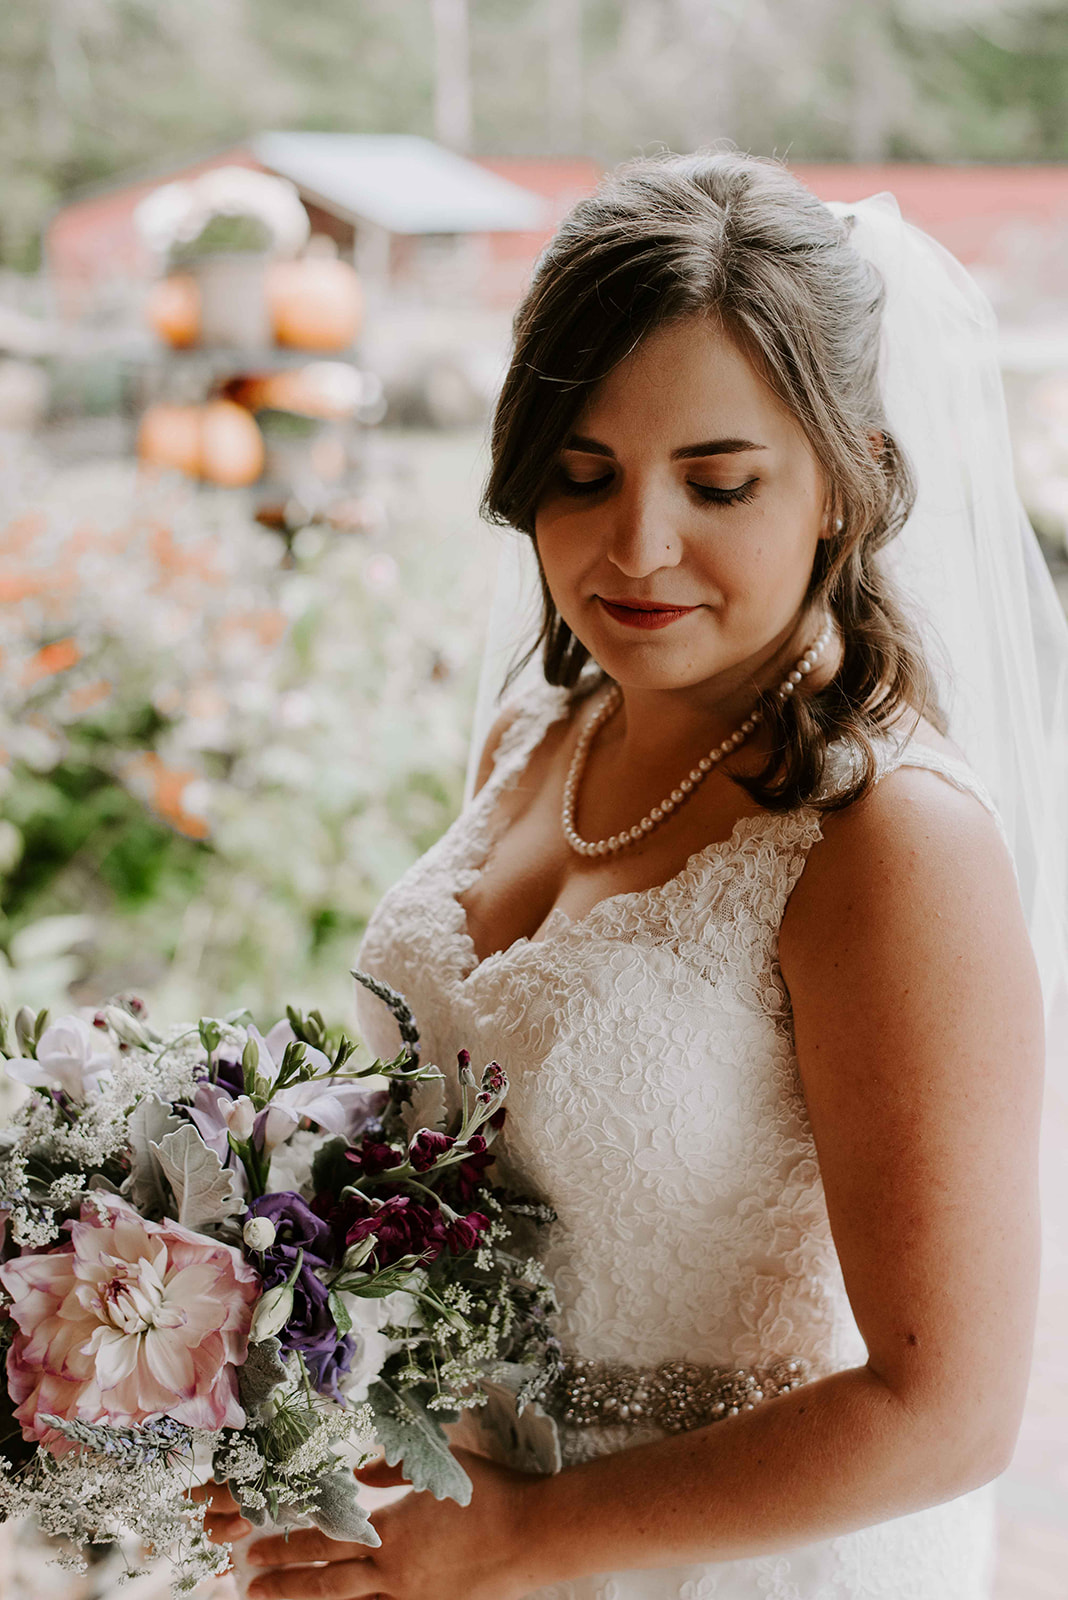 New Hampshire wedding photographer for a boho and intimate New Hampshire bride at Stonewall Farm, Keene, NH